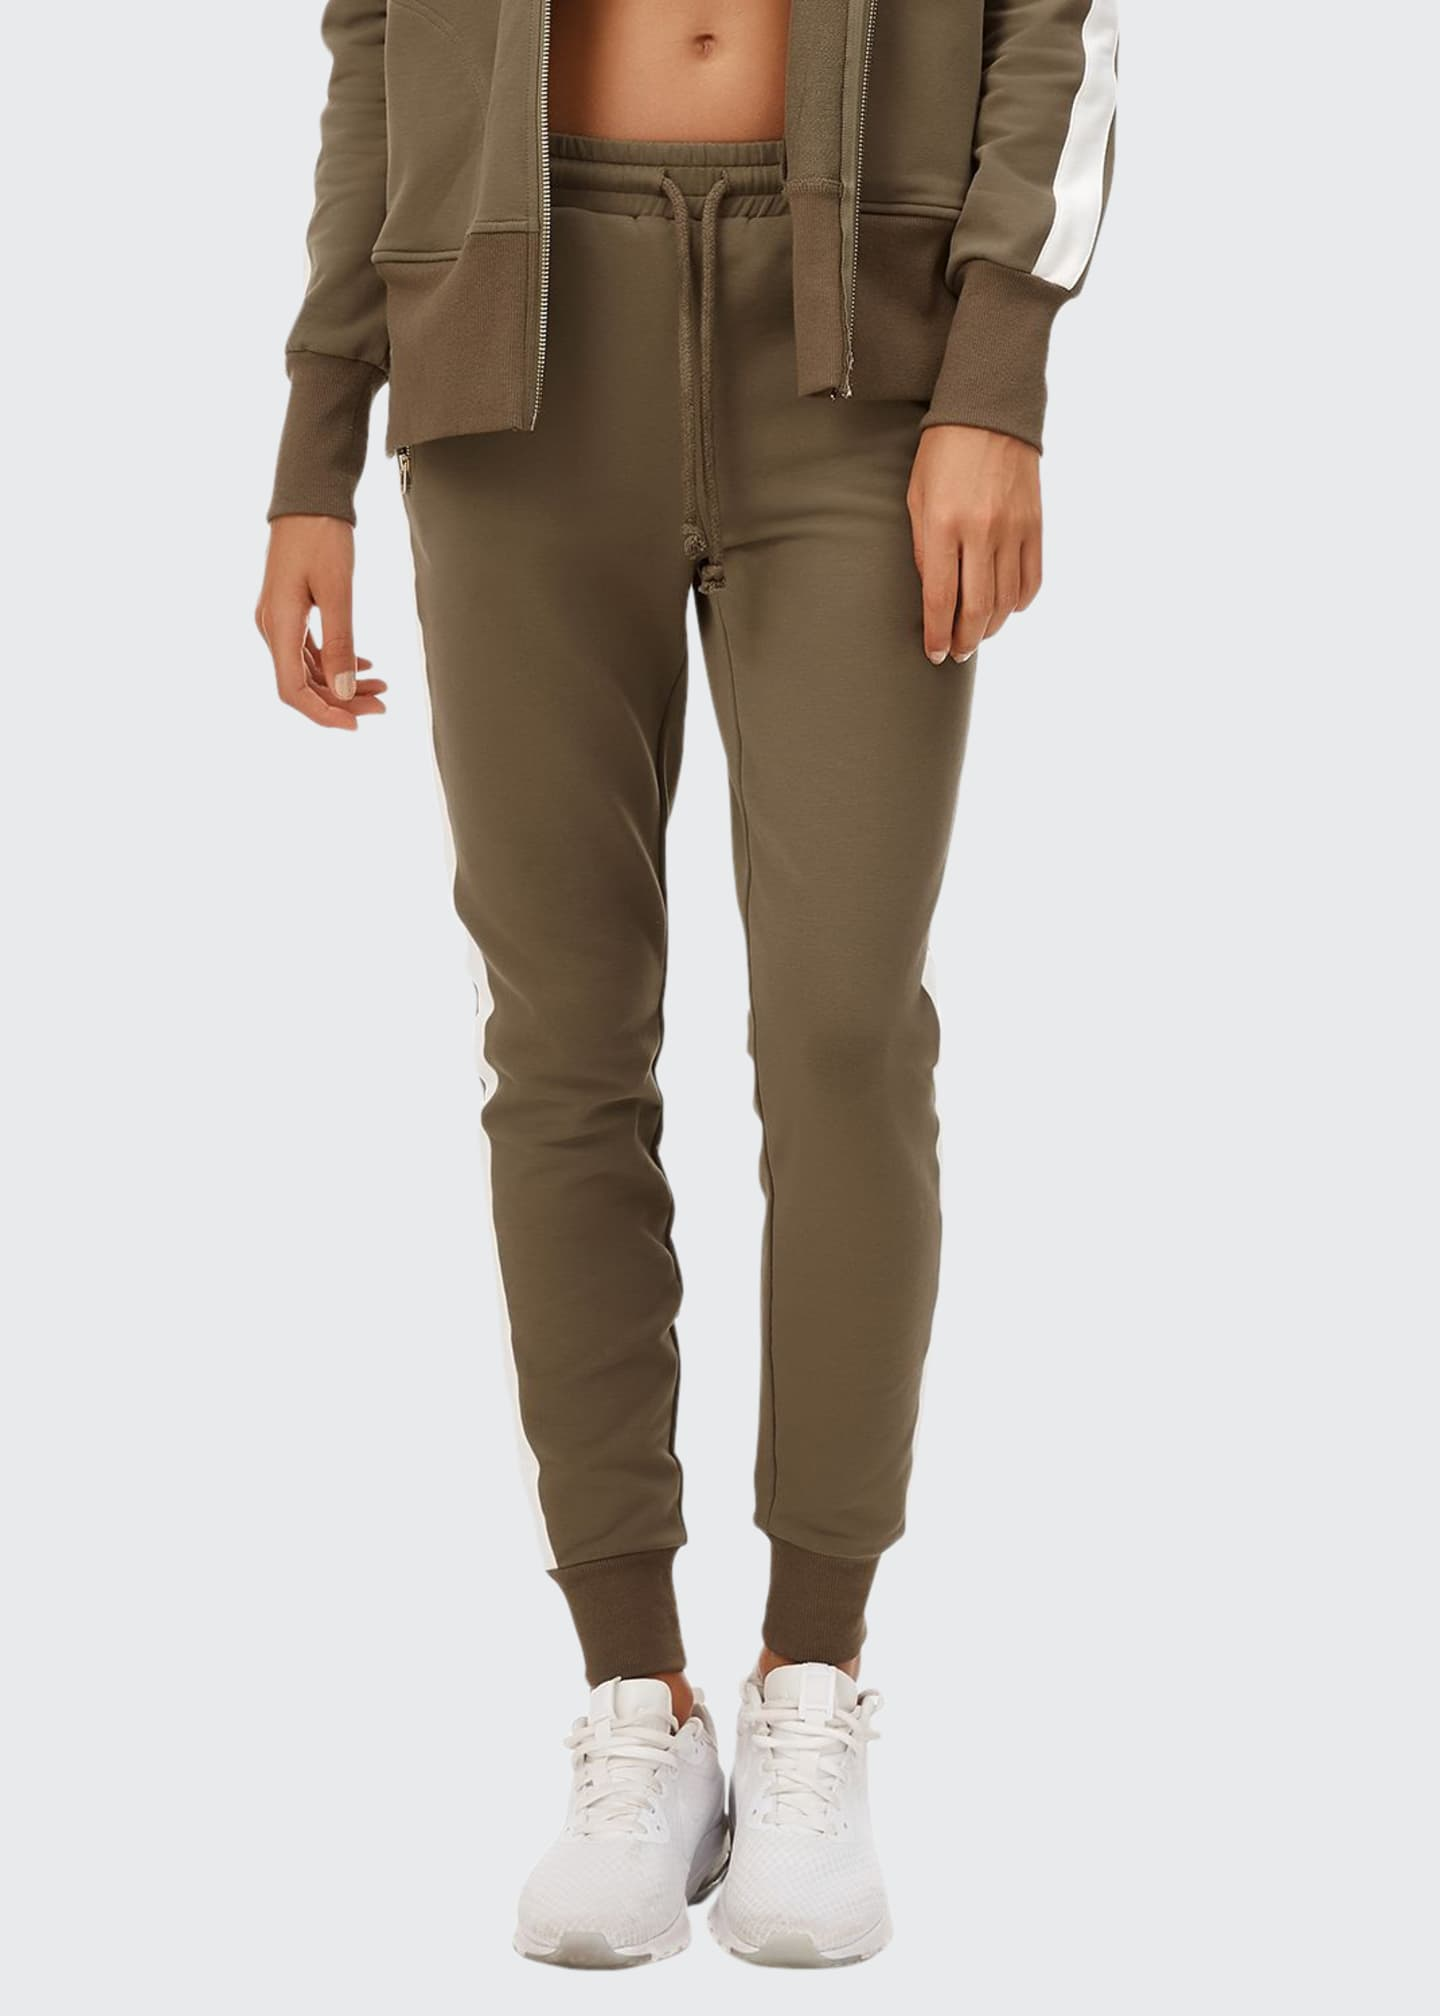 All Fenix Jade Sweatpants